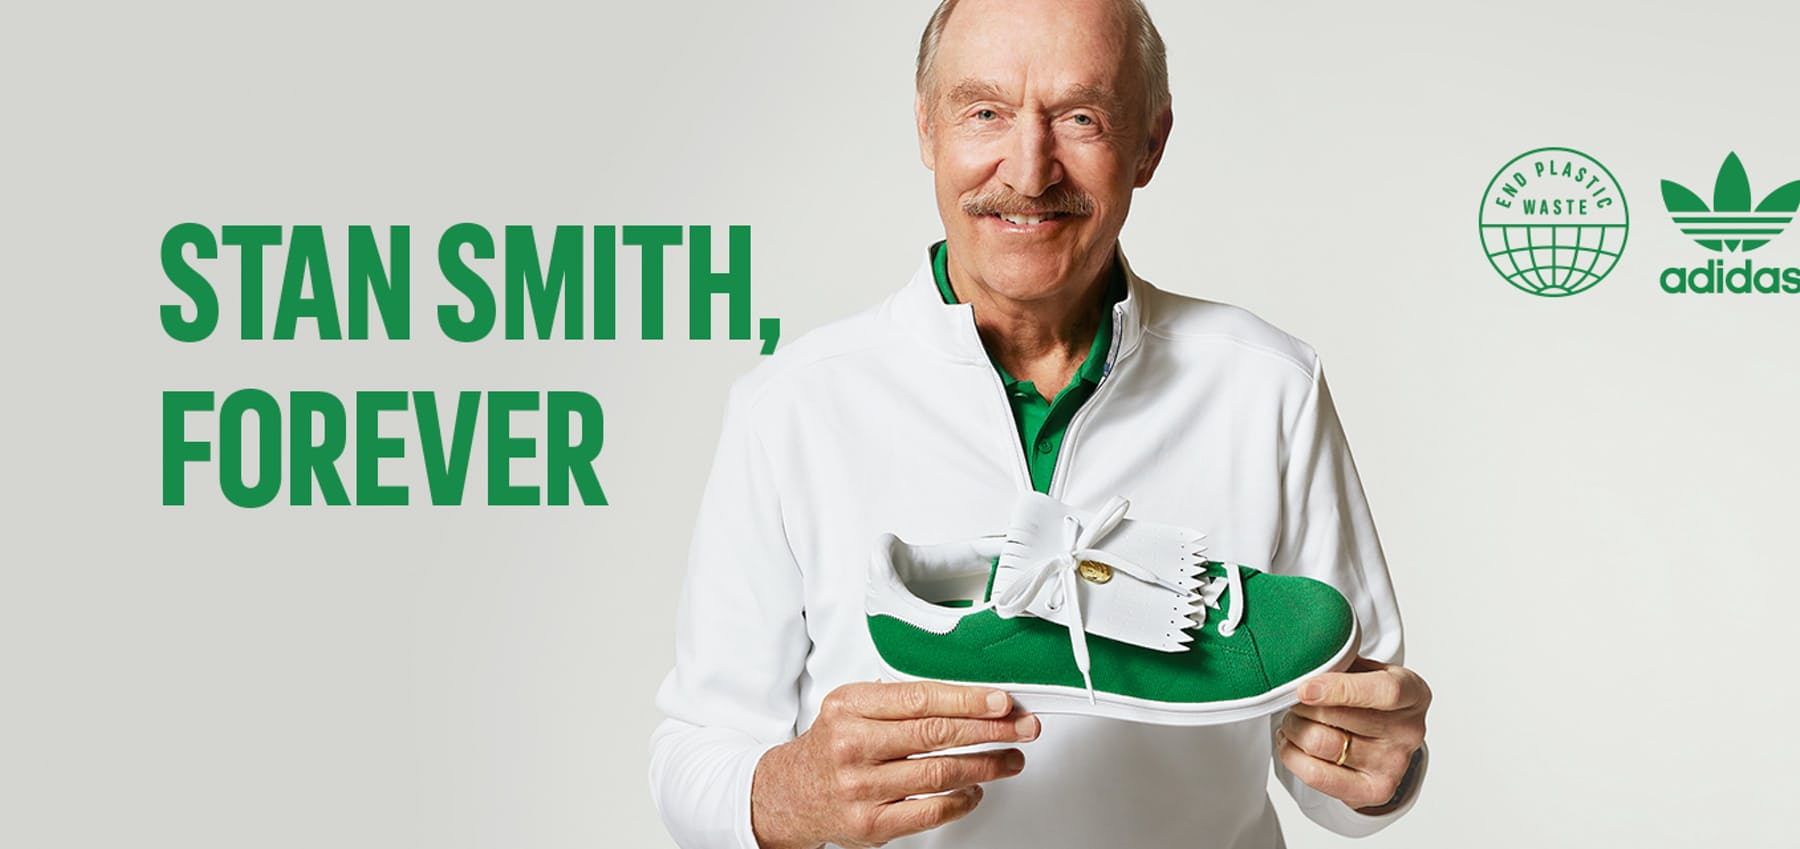 Stan Smith, Forever   adidas Limited Edition Golf Shoe